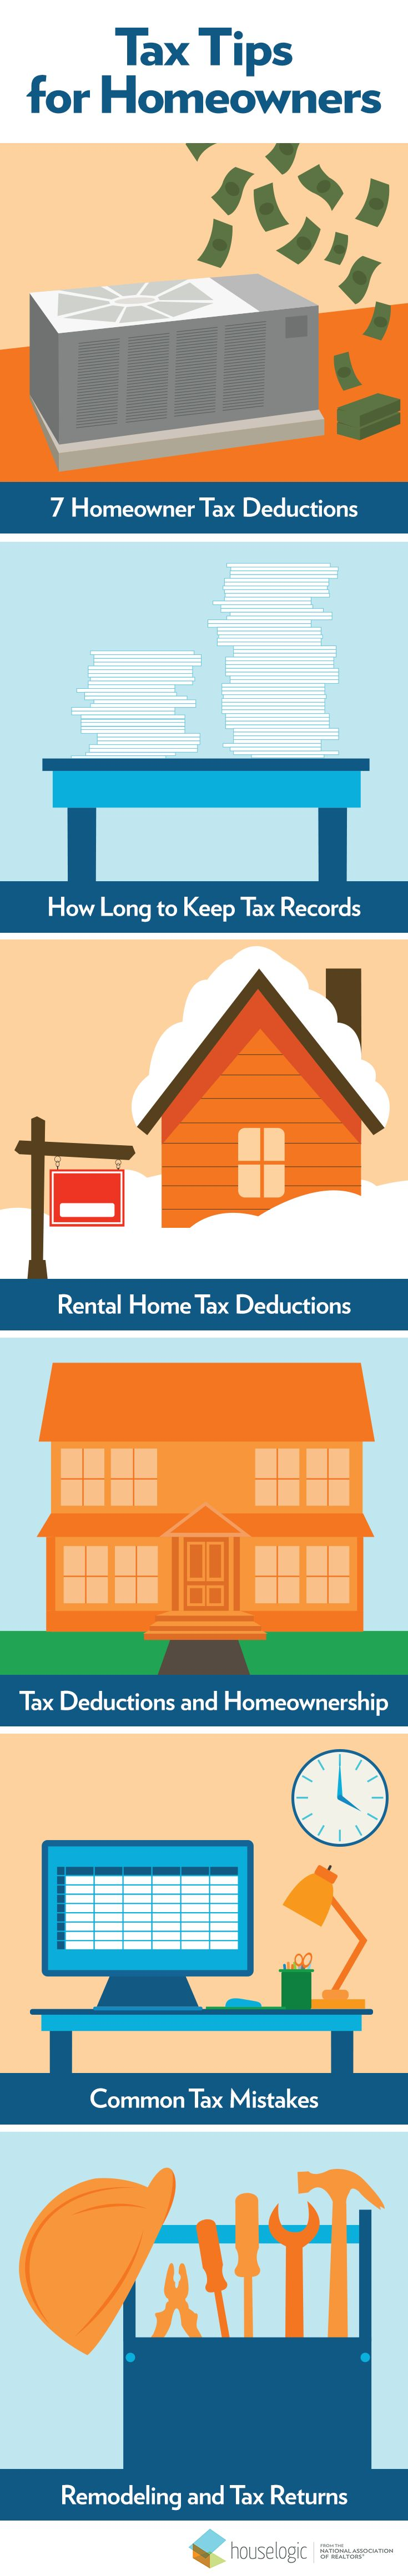 Accountantapproved Tips, Homeownership Deduction Checklists And Other  Helpful Advice To File Taxes With